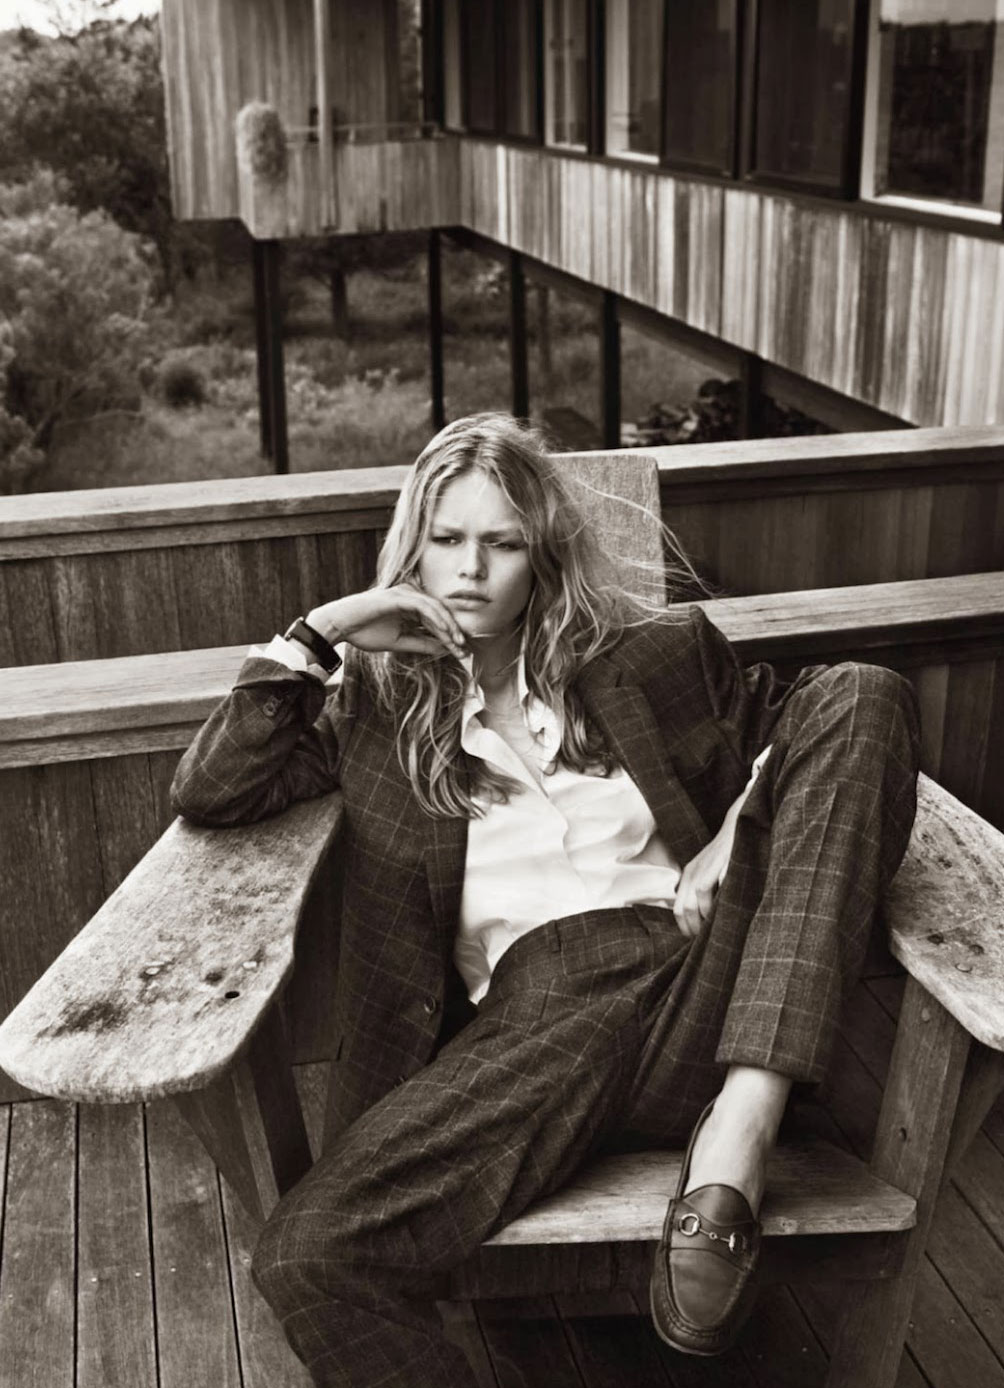 Anna Ewers in Hamptons | Vogue Paris October 2013 (photography: Josh Olins, styling: Geraldine Saglio)